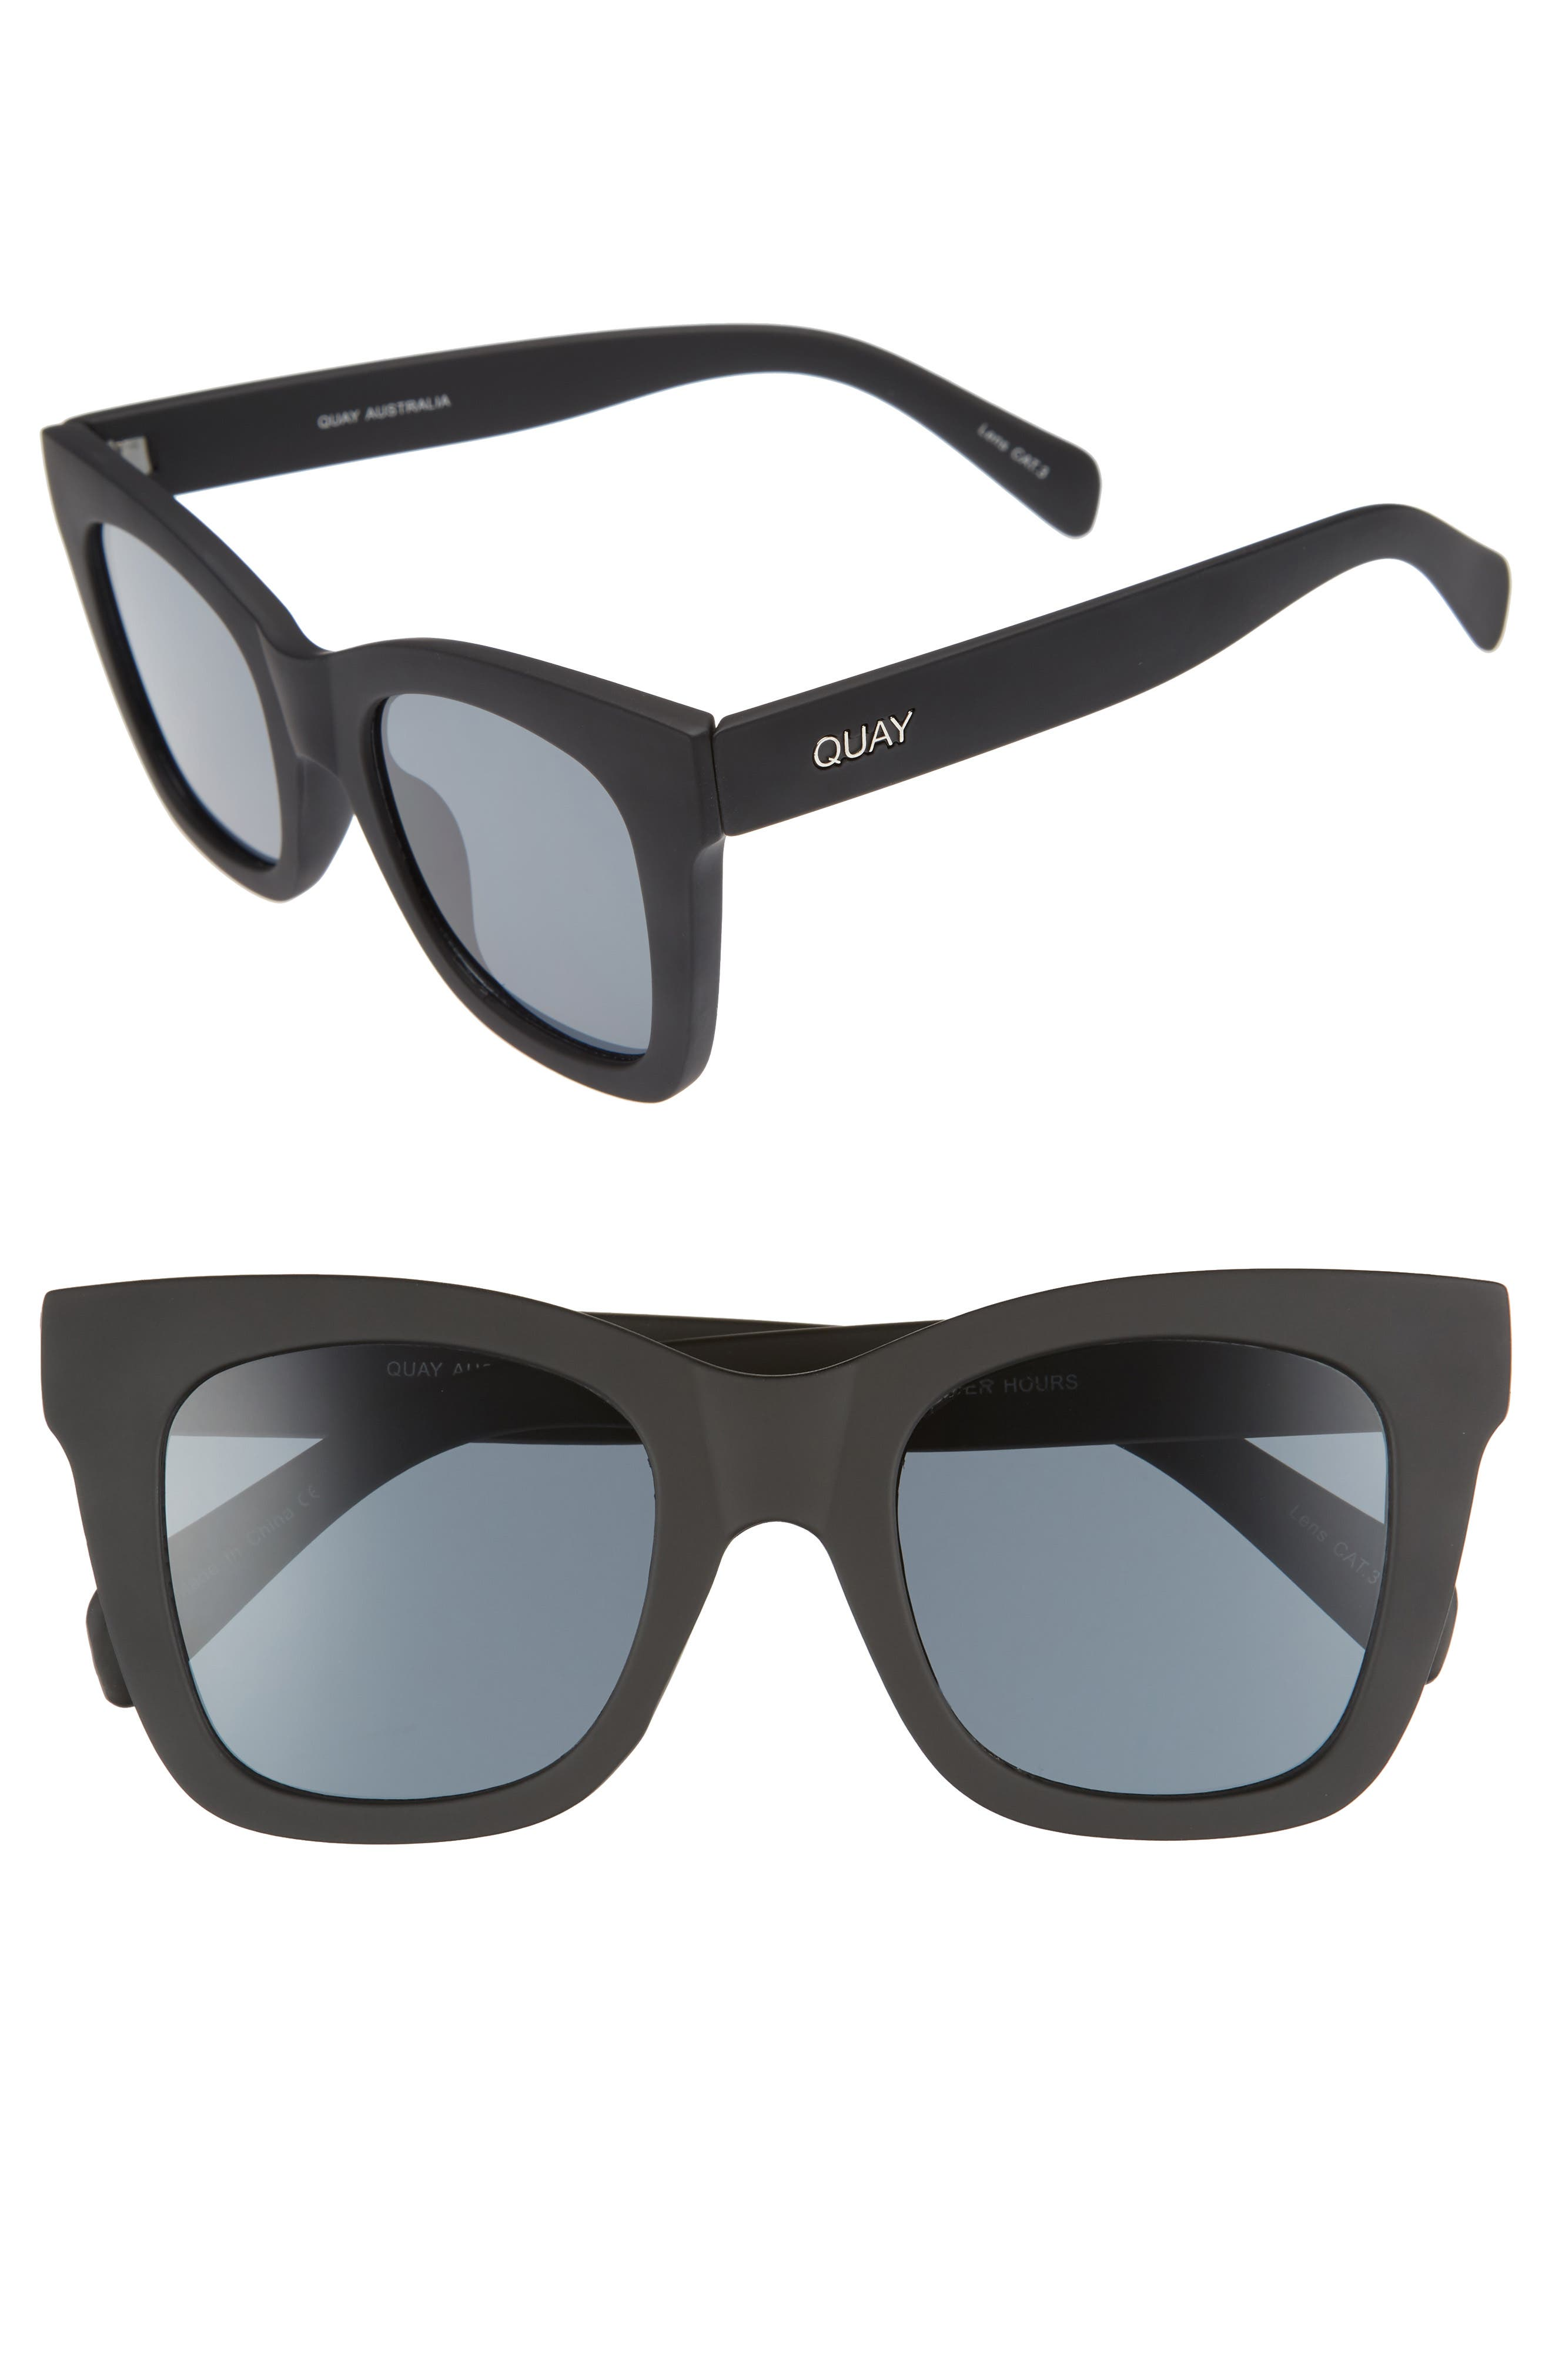 After Hours 50mm Square Sunglasses,                         Main,                         color, BLACK SMOKE